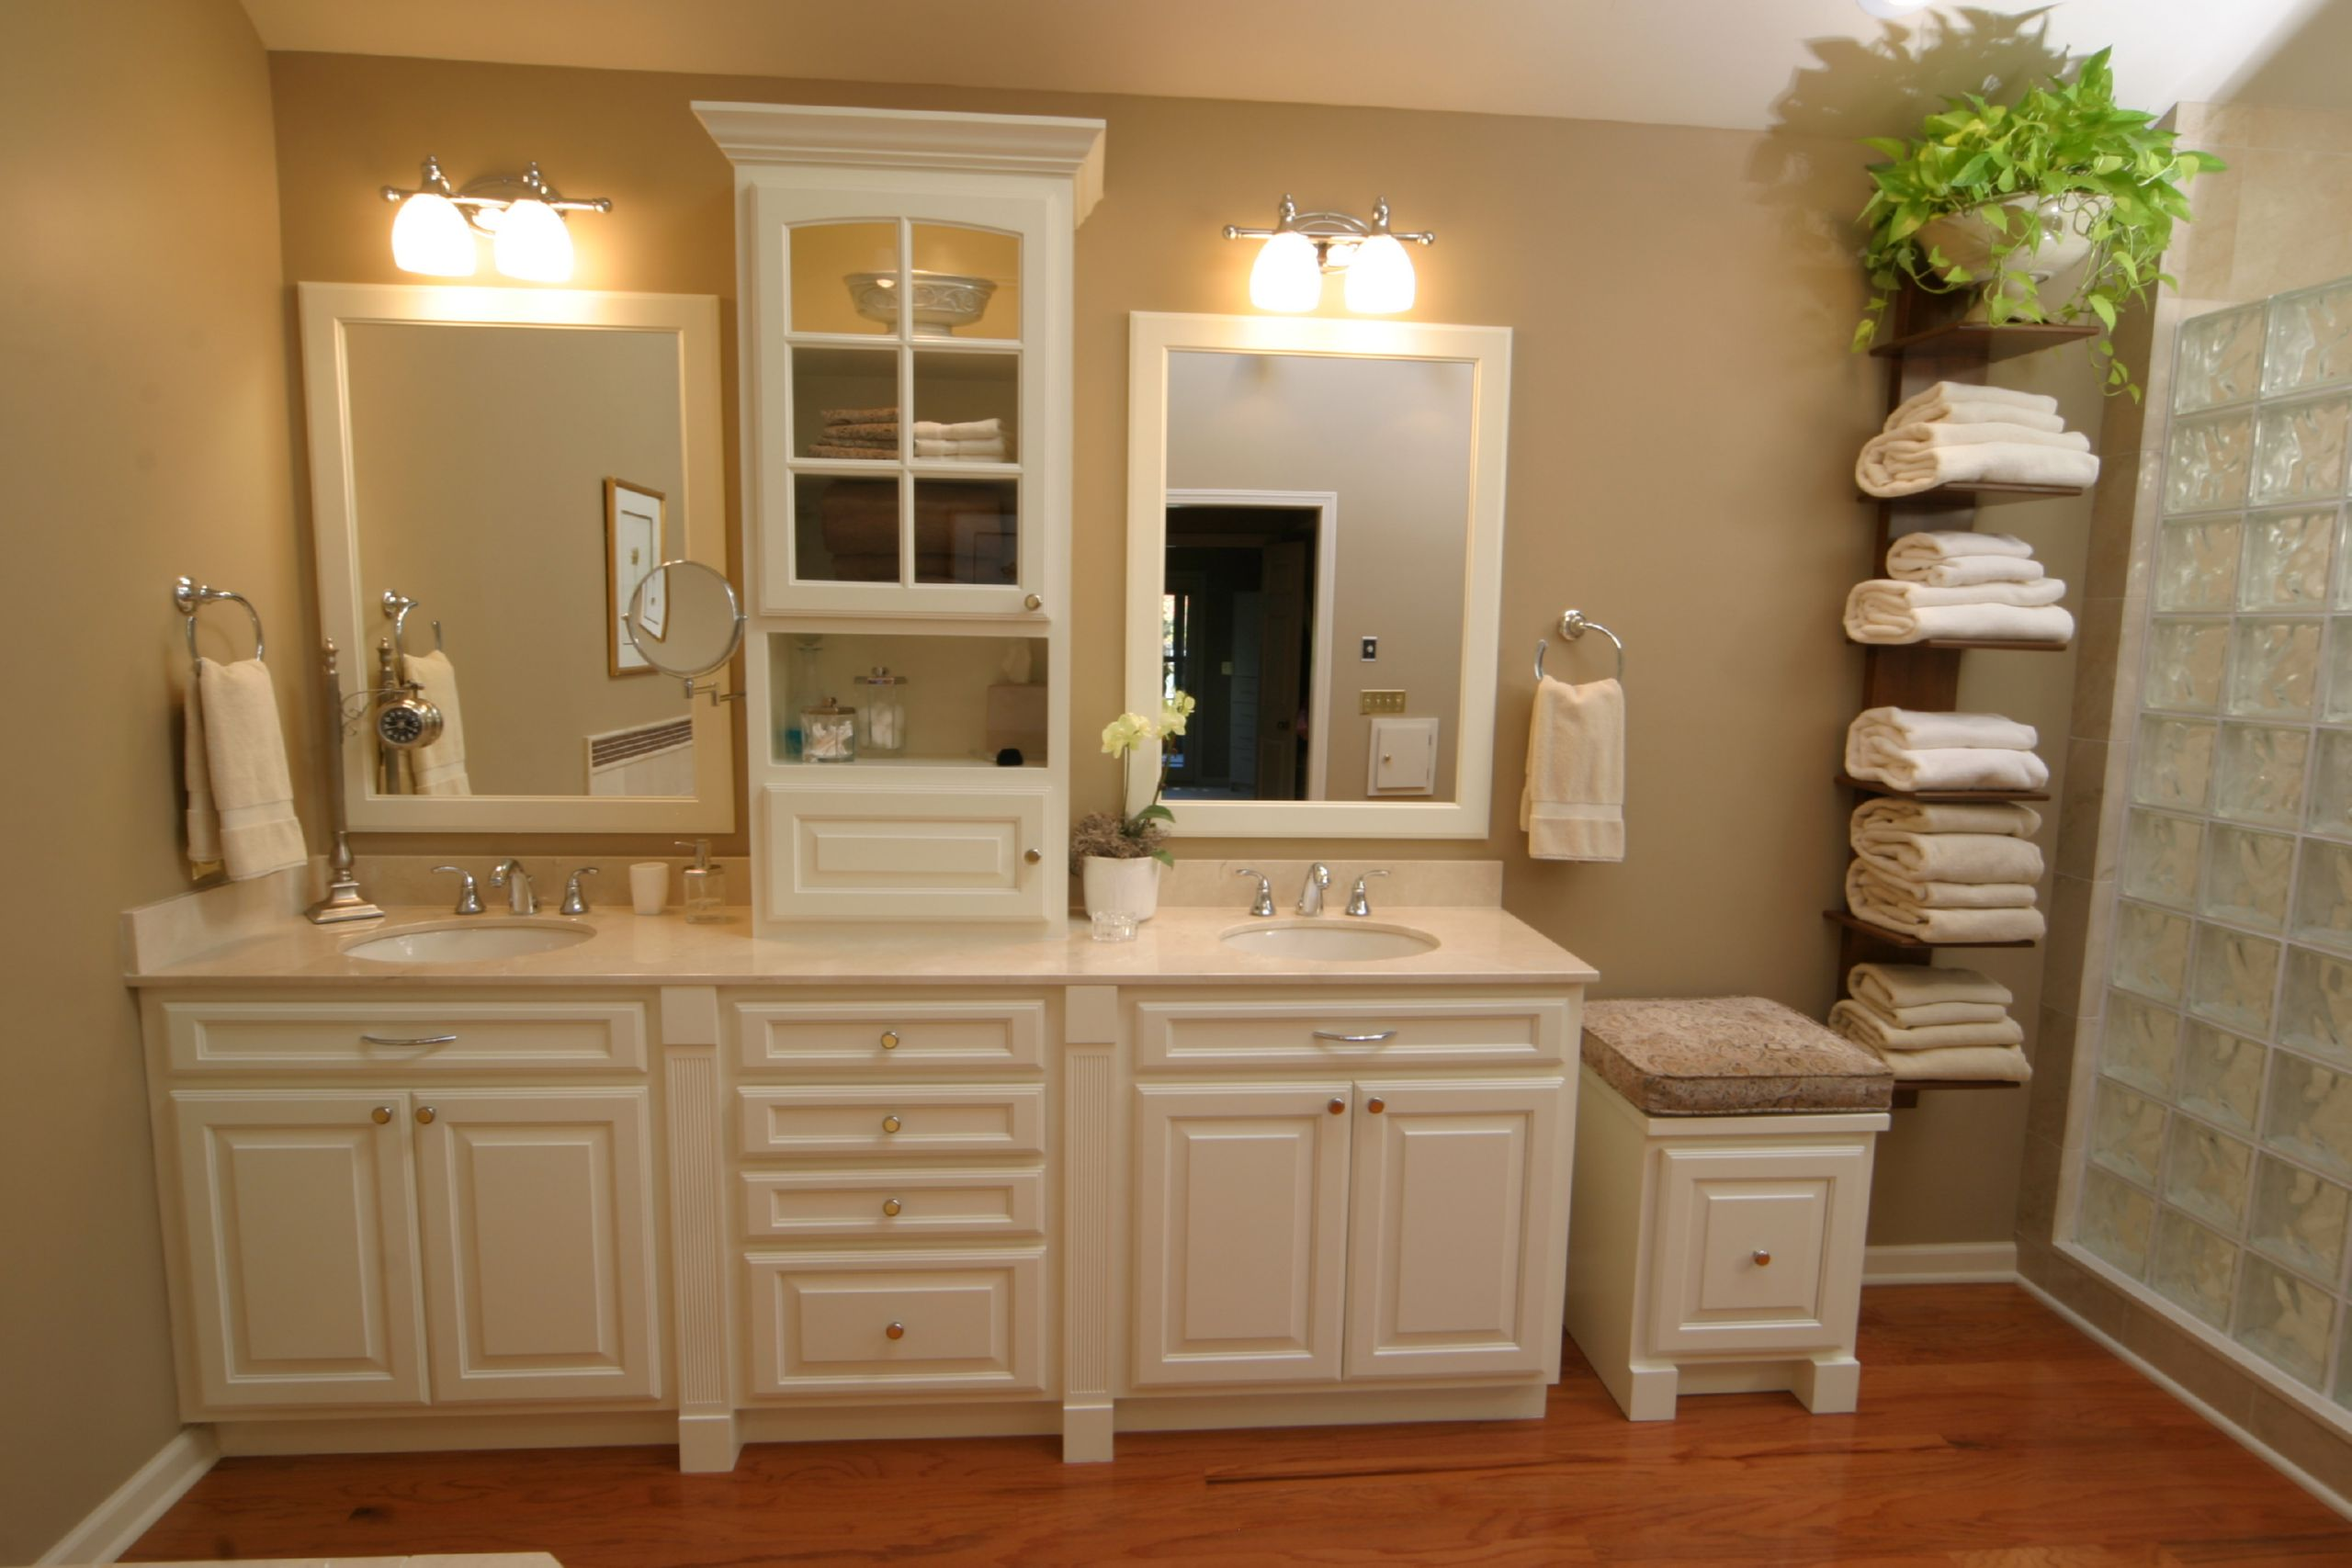 Bathroom remodeling bath remodel contractor for Bathroom renovation ideas